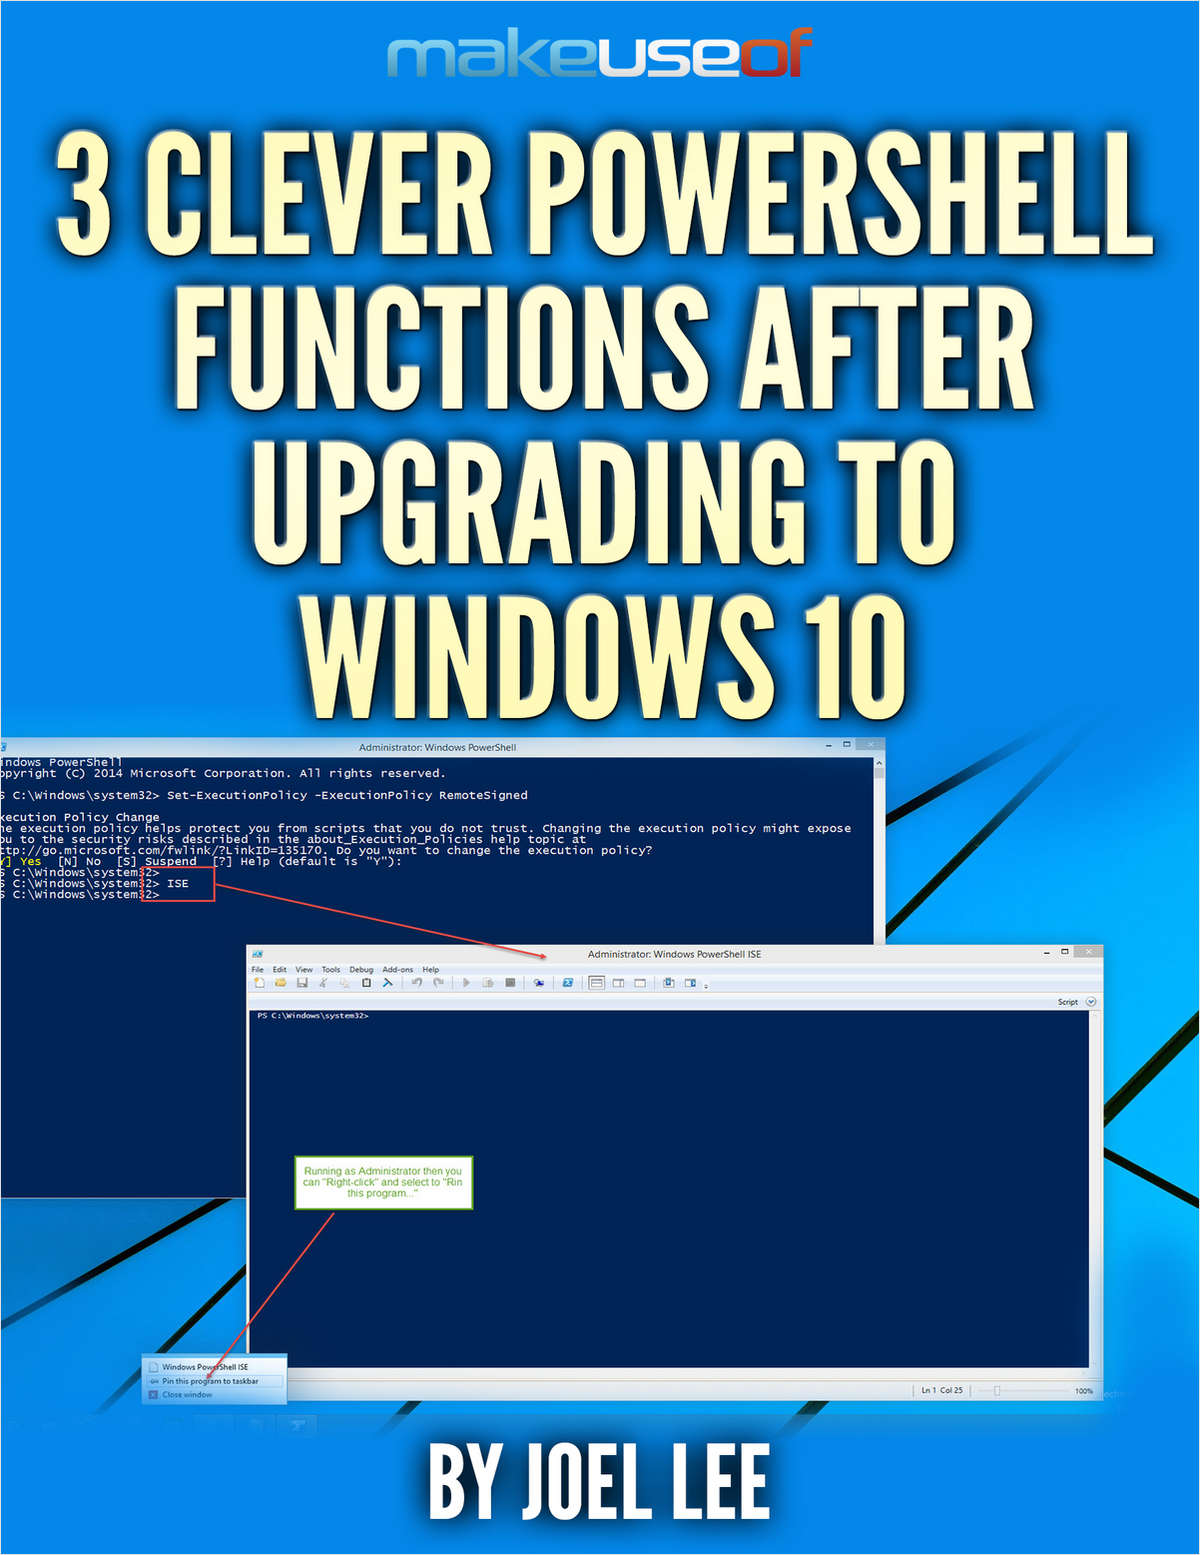 3 Clever PowerShell Functions After Upgrading to Windows 10